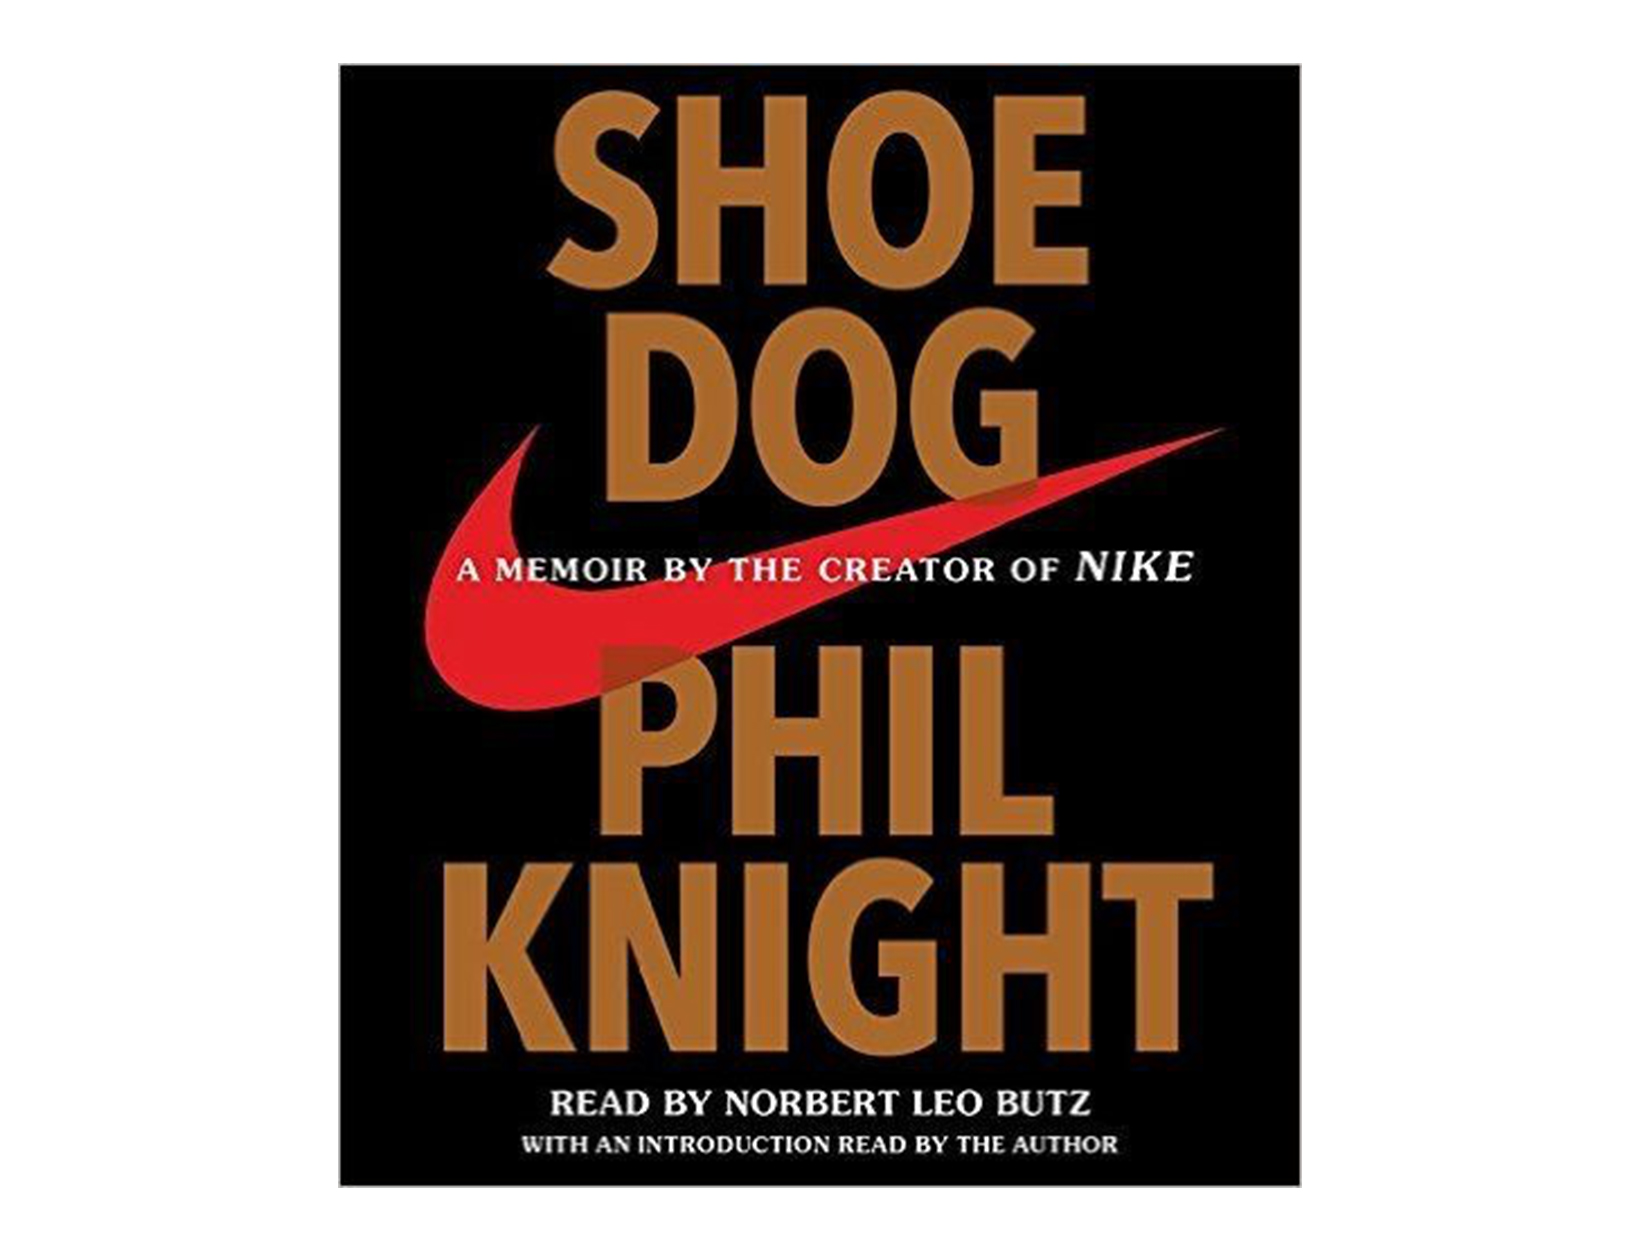 Shoe Dog by Phil Knight, read by Norbert Leo Butz